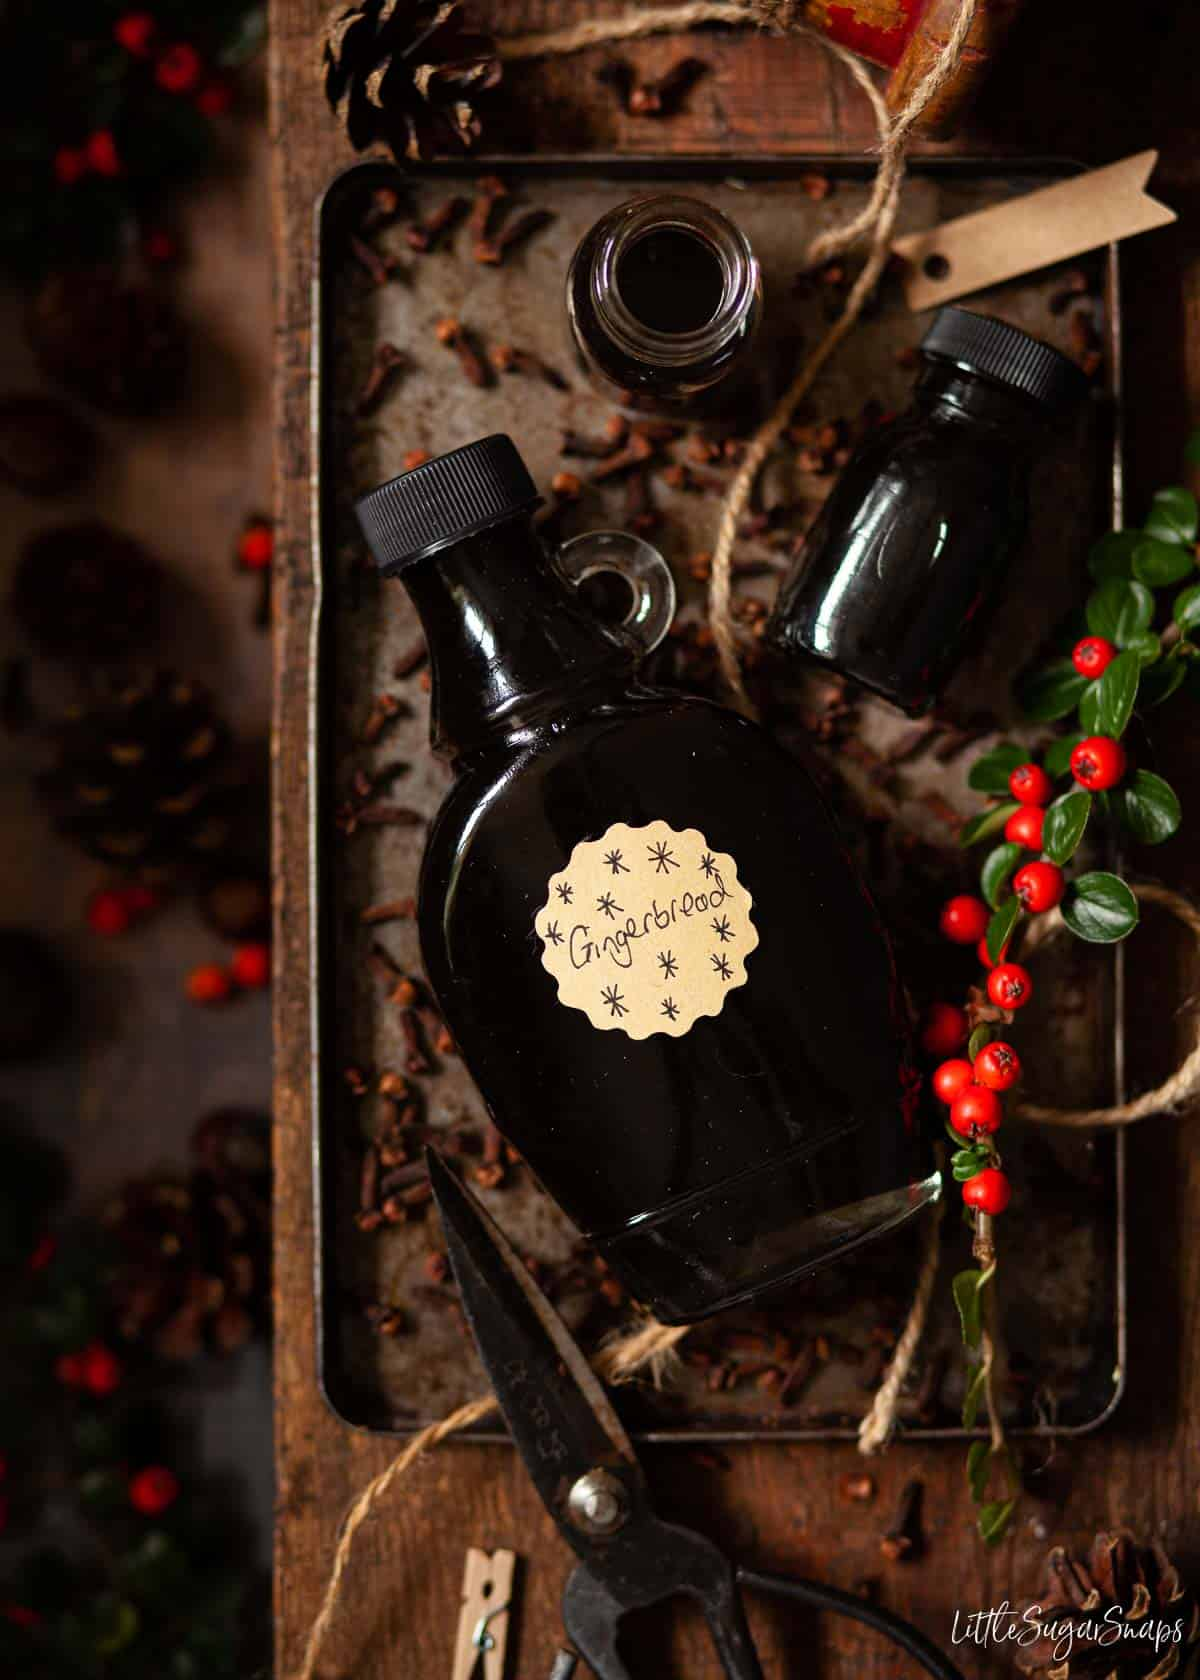 Bottles of gingerbread latte syrup on a tin tray with cloves.